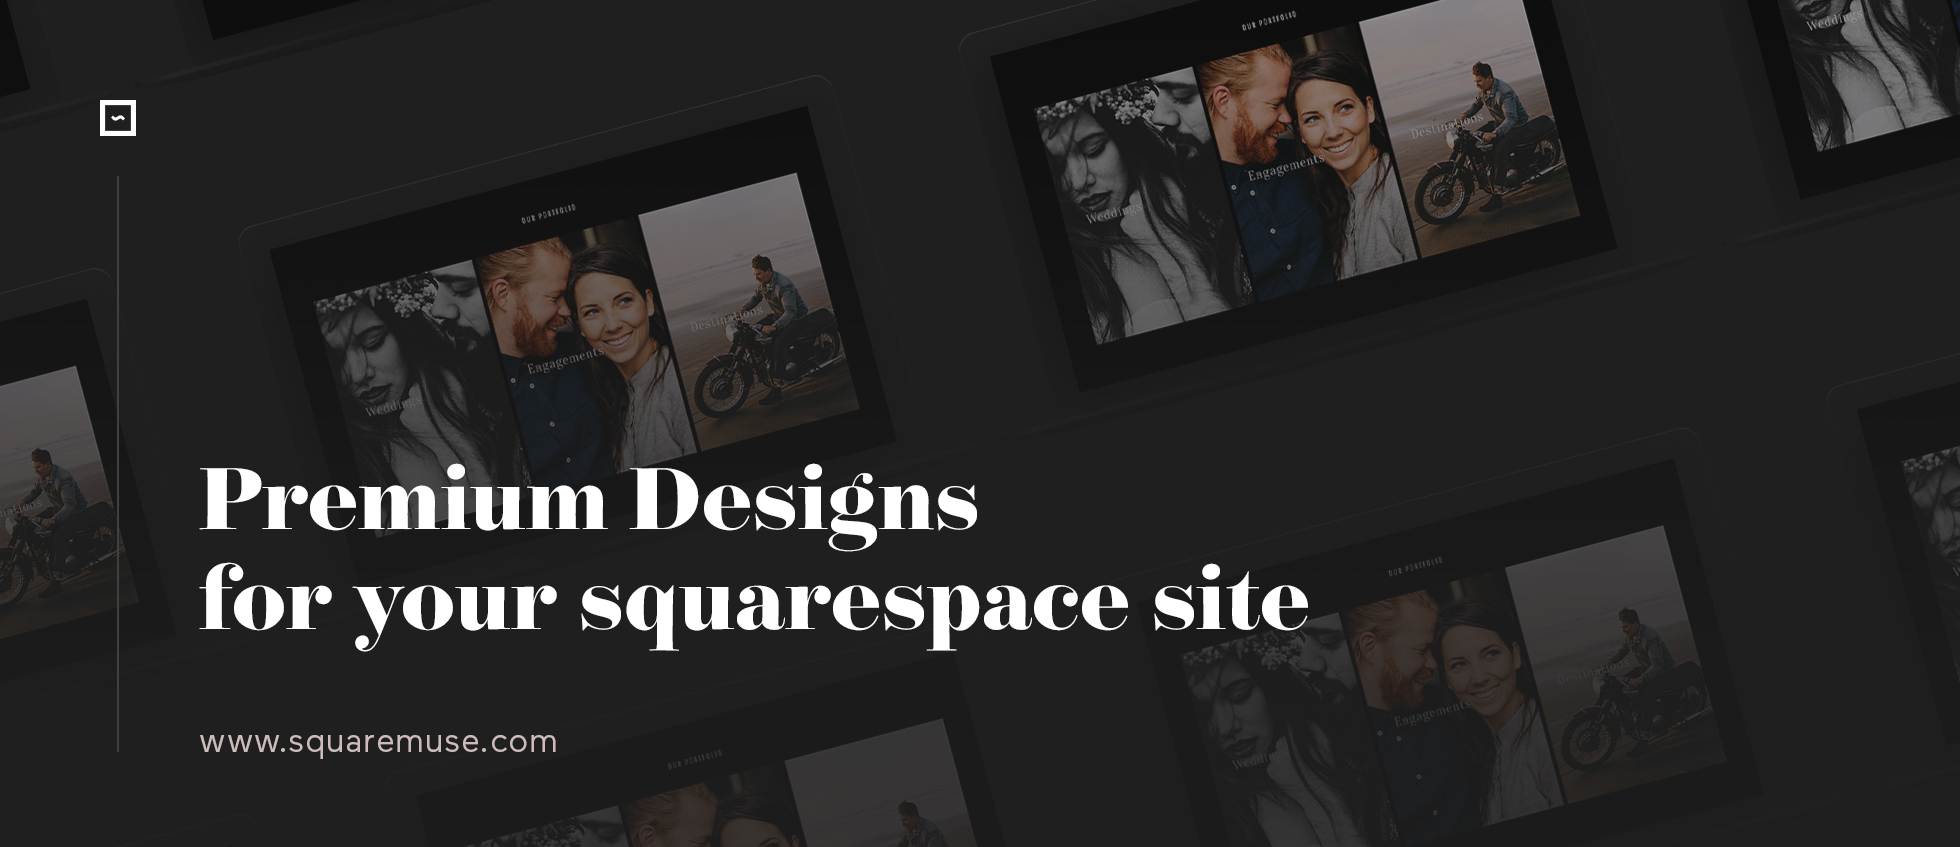 premium designs for squarespace